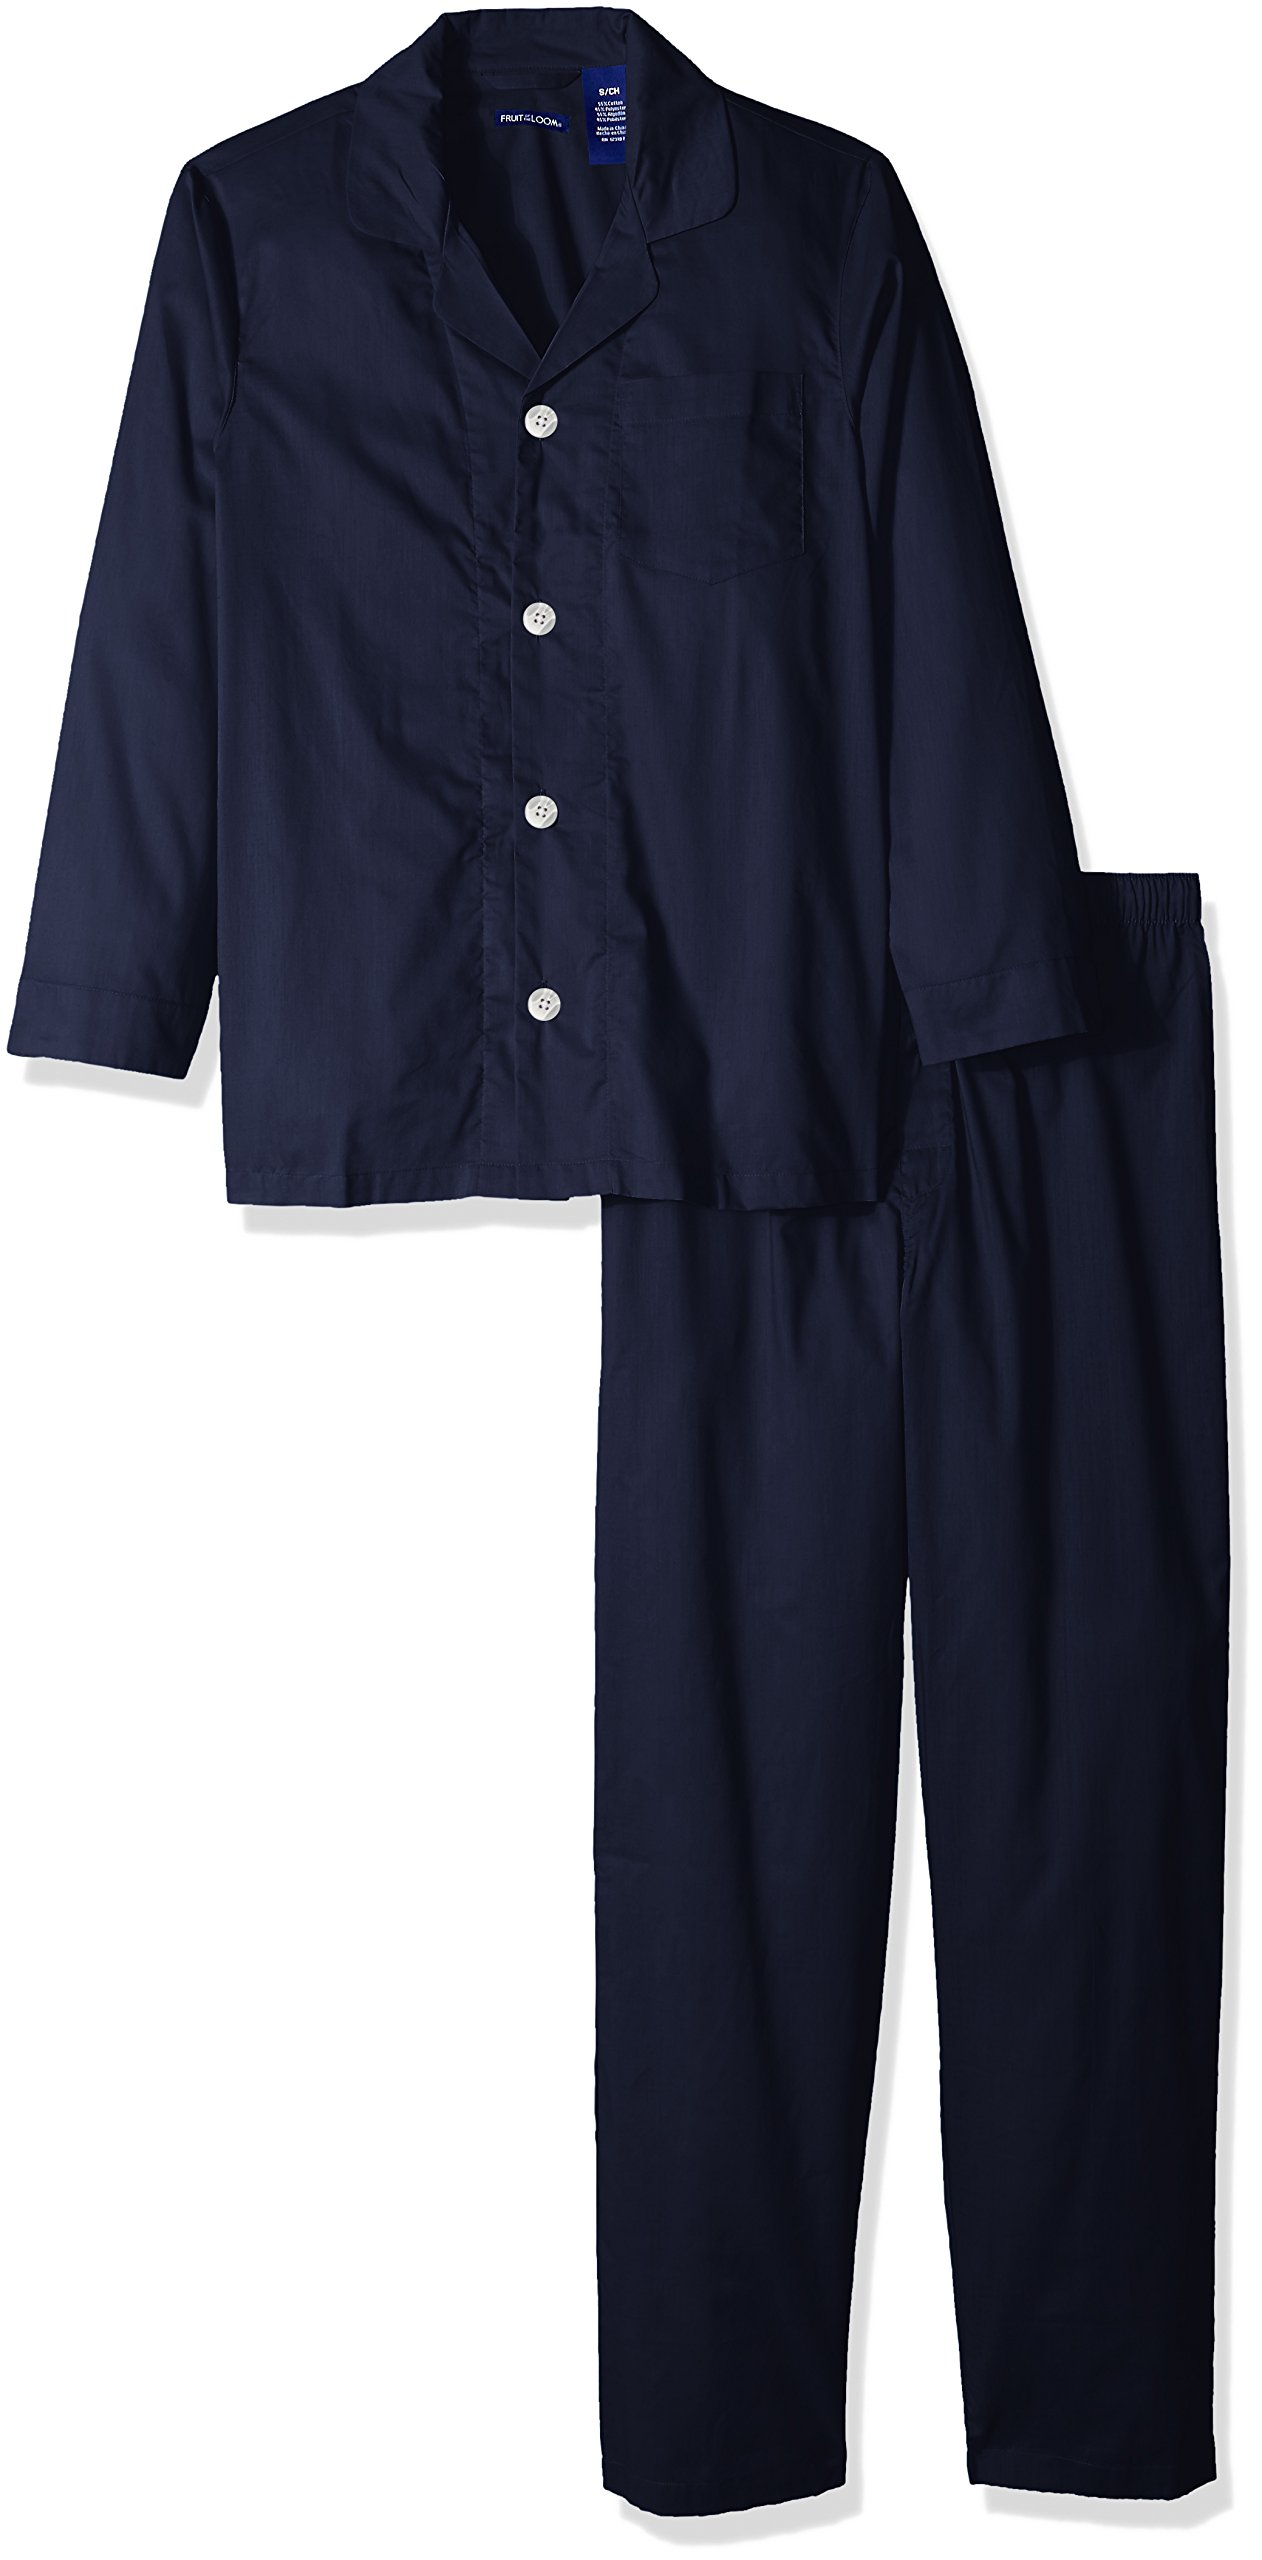 Fruit of the Loom Men's Solid Long Sleeve Broadcloth Pajama Set, Navy, X-Large